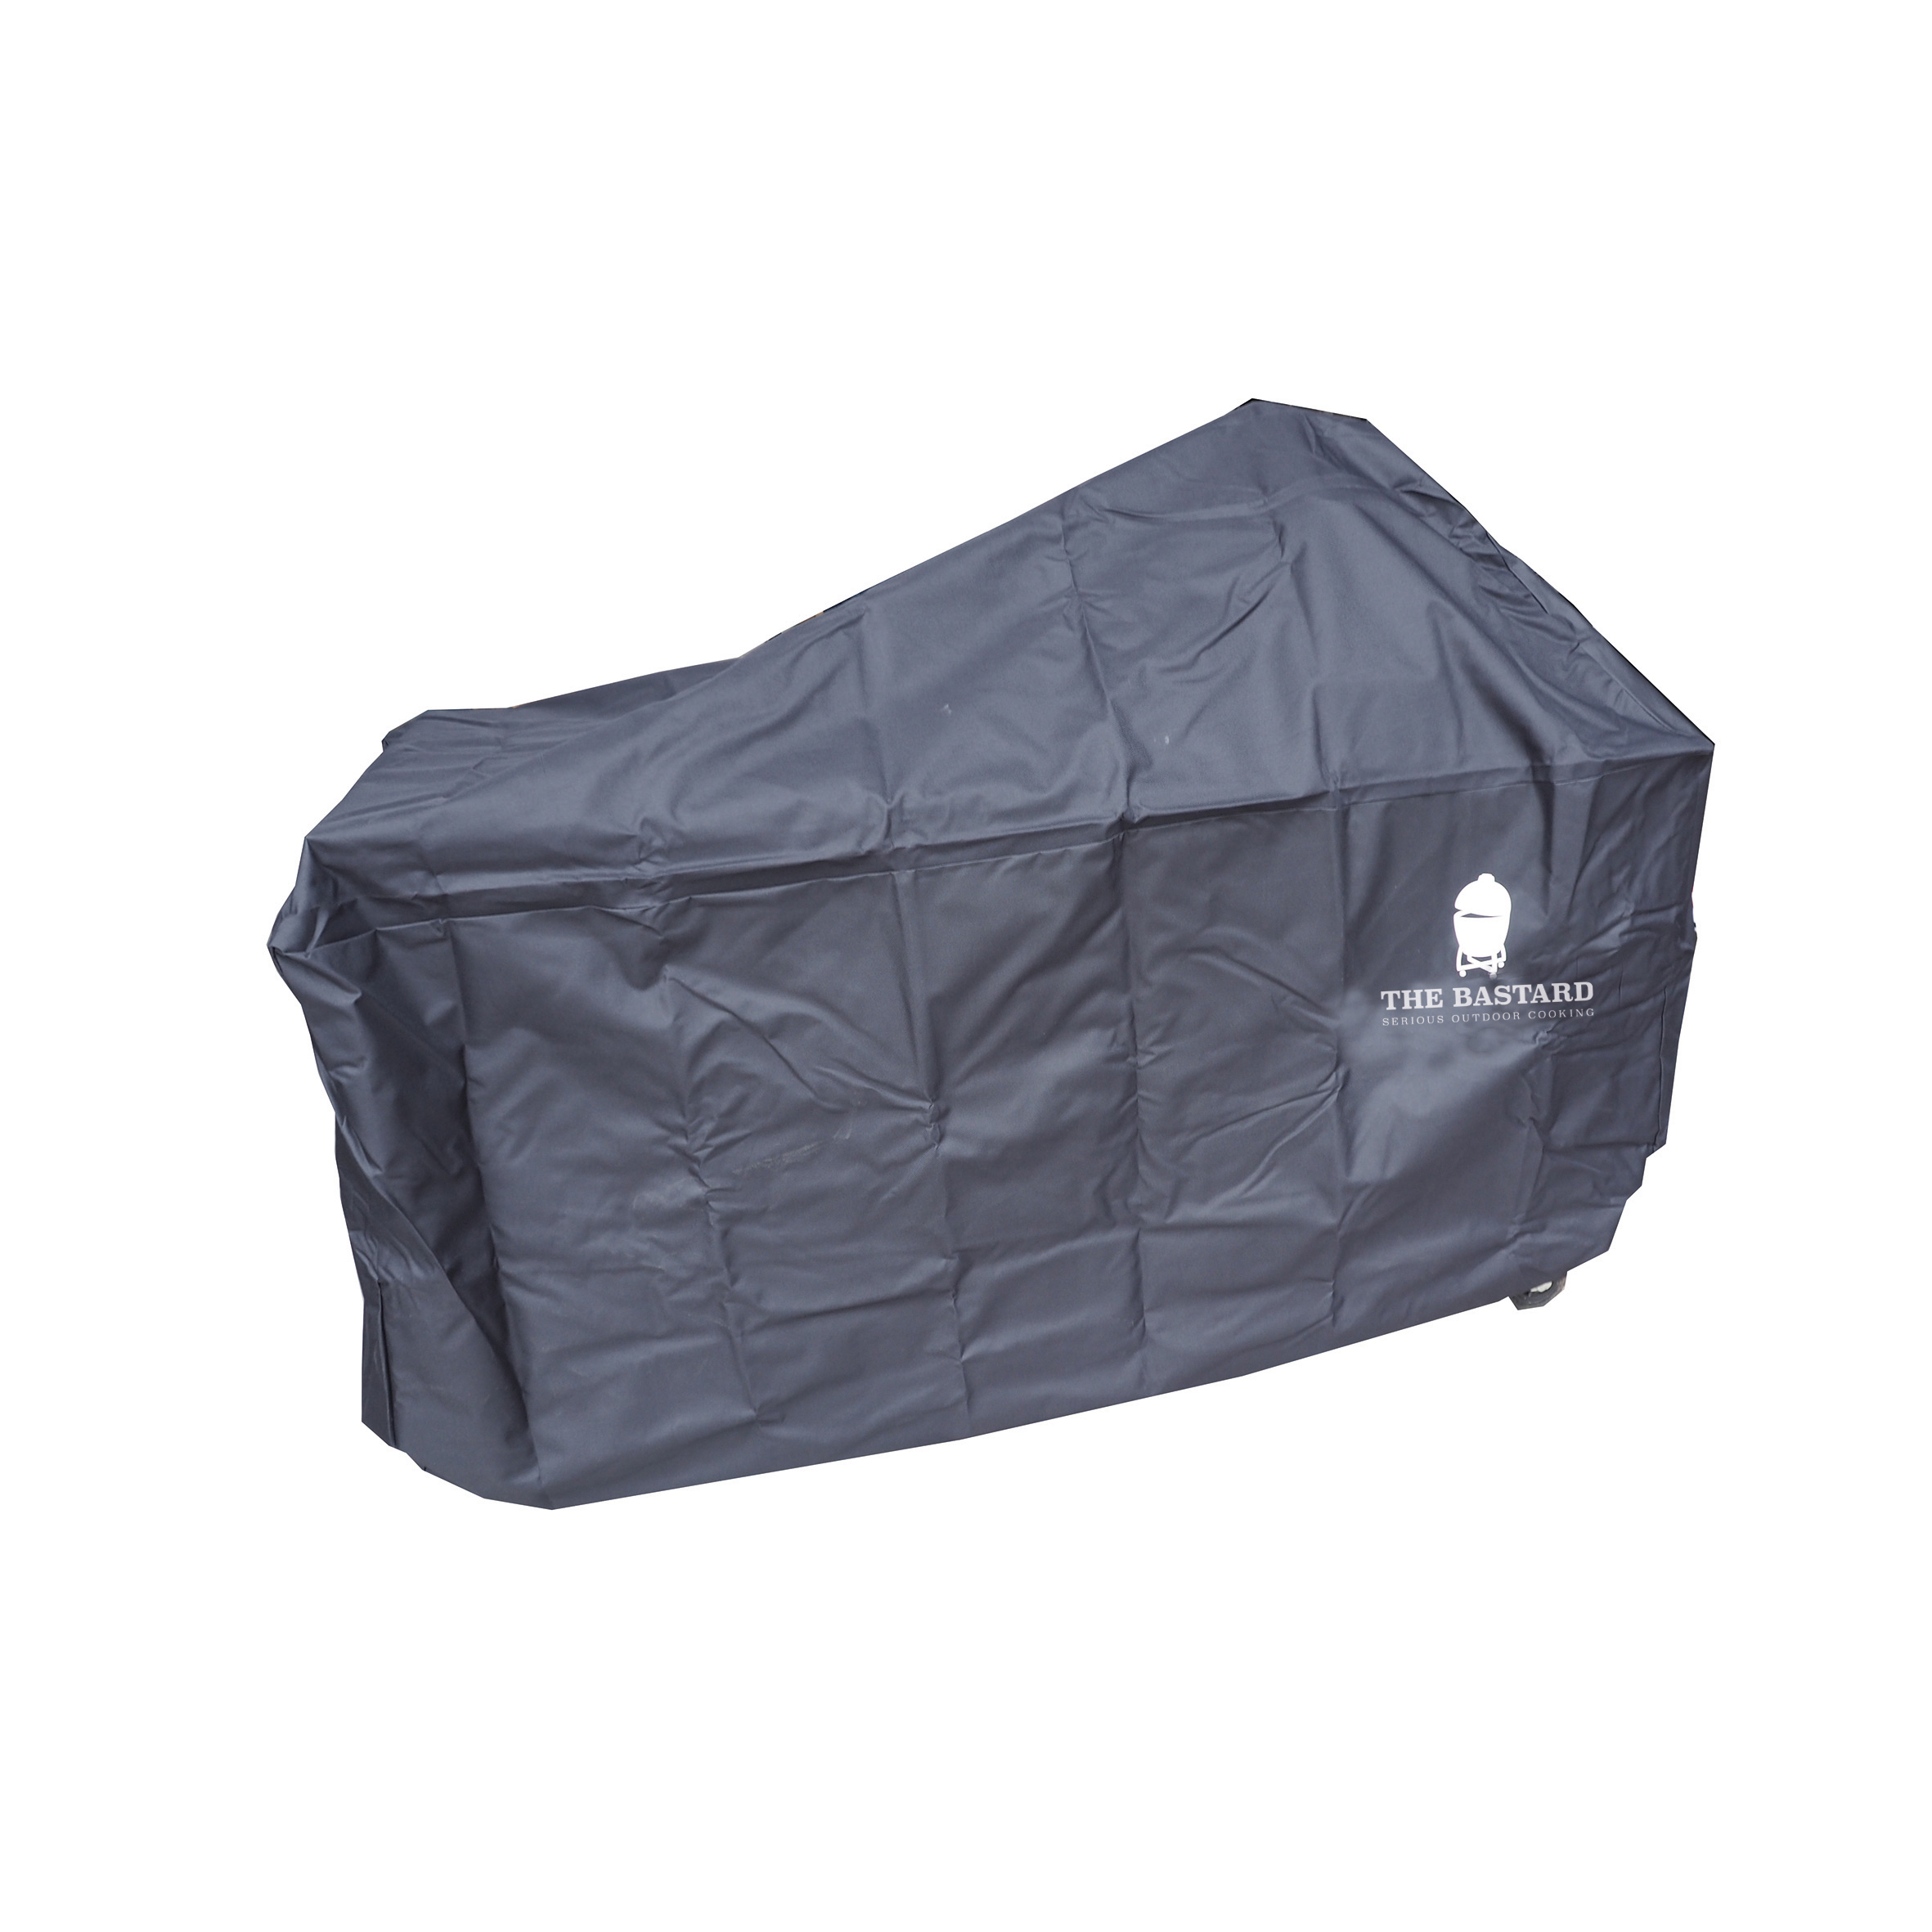 BB022t The Bastard Raincover Table (160cm)